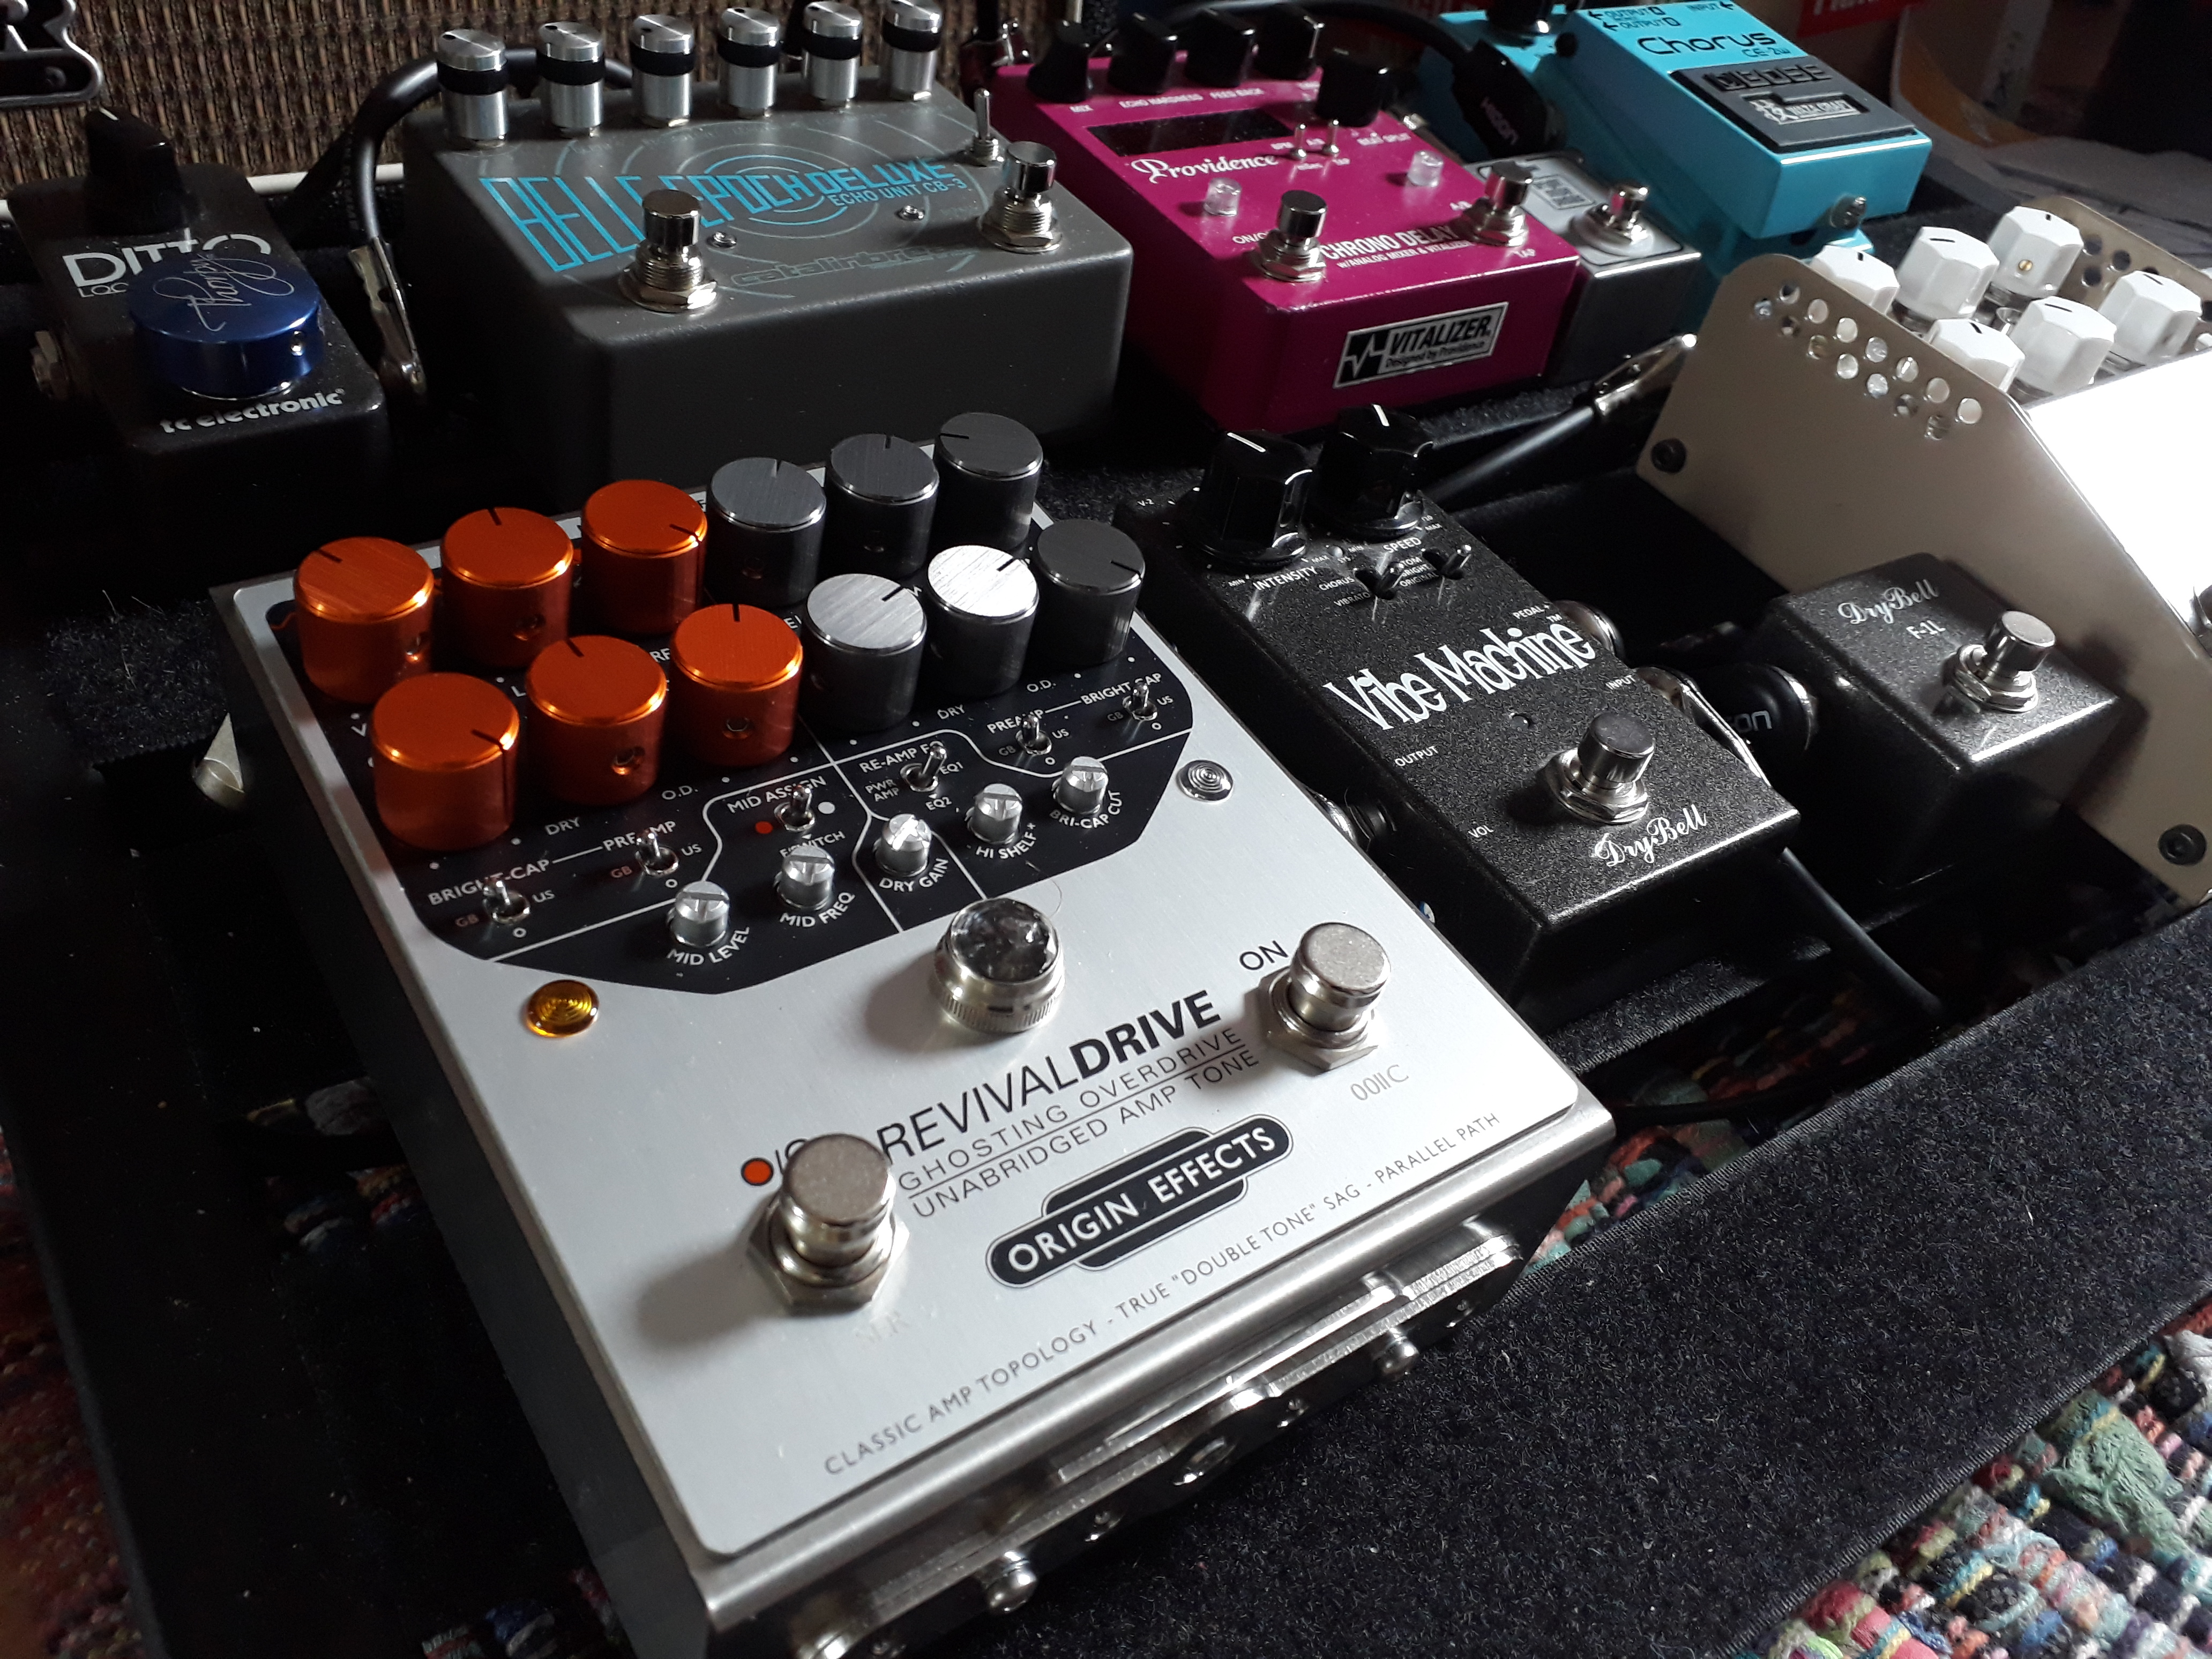 Origin Effects RevivalDRIVE amp in a box pedal on John Hosker pedalboard